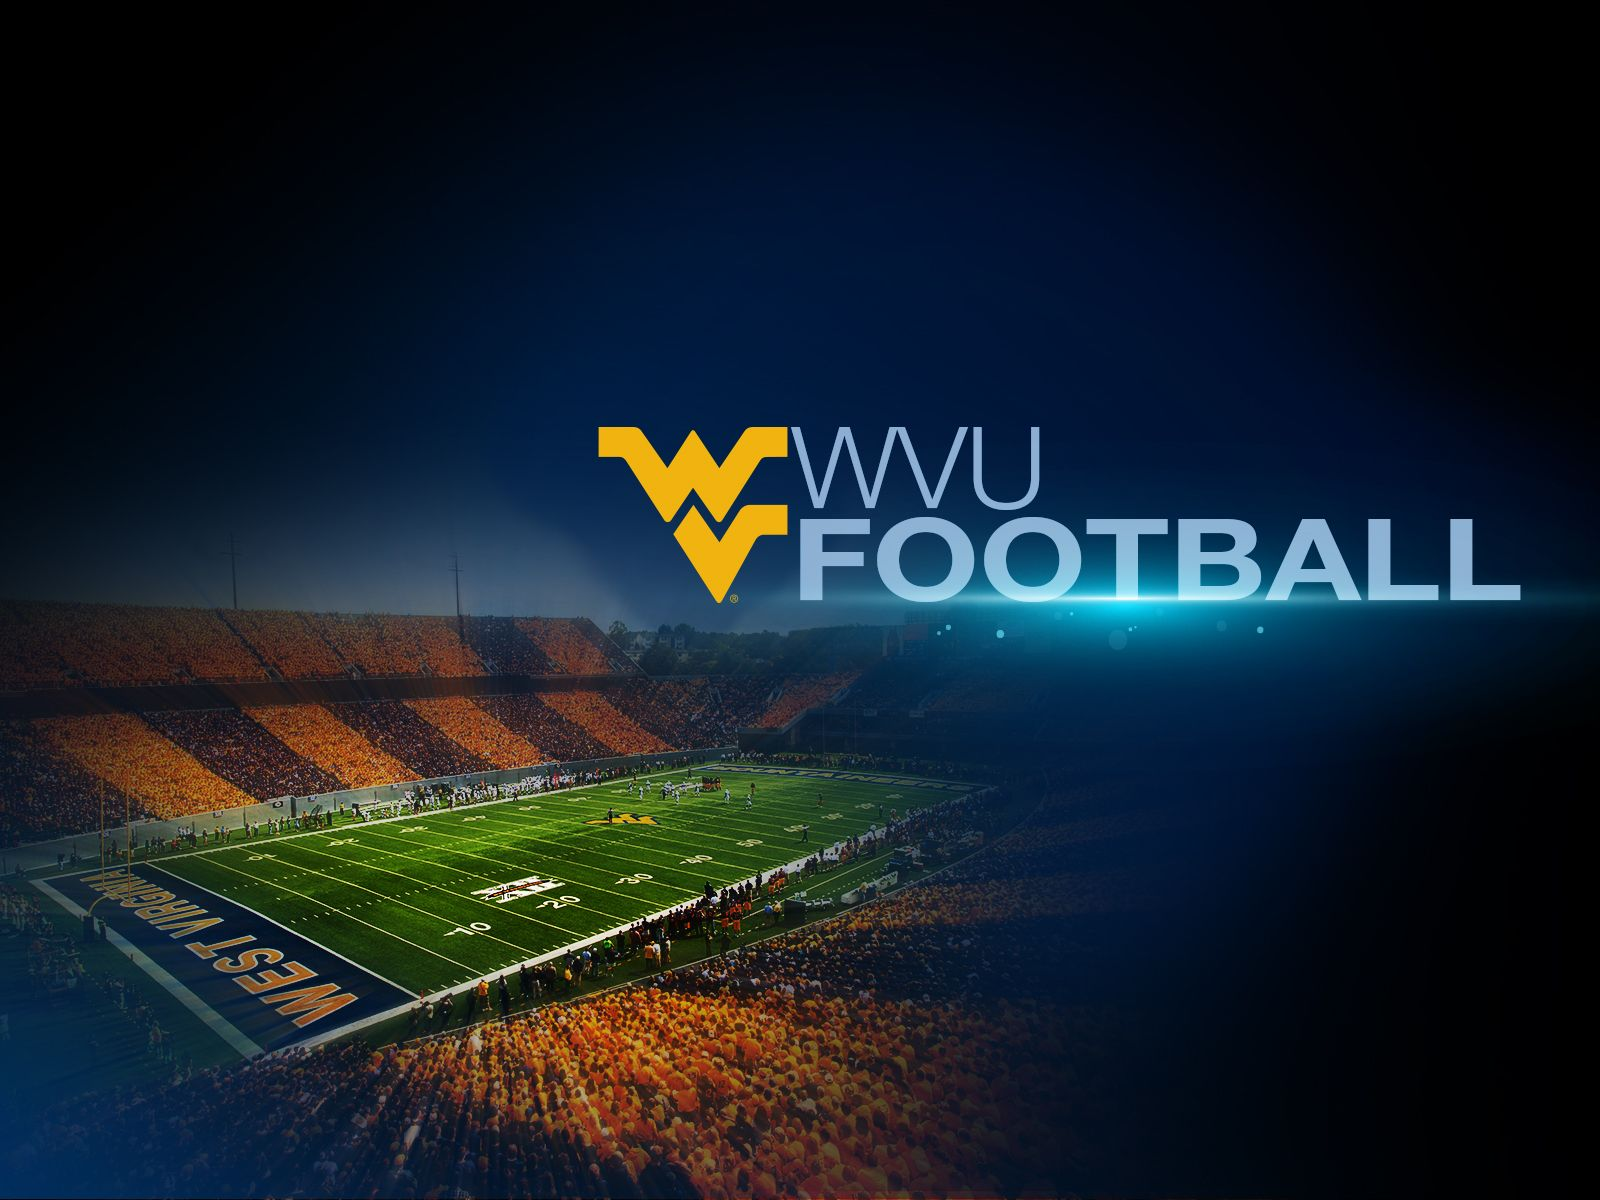 Wvu Football Wallpaper Large Hd Wallpaper Database Wvu Football Football Wallpaper Mountaineers Football